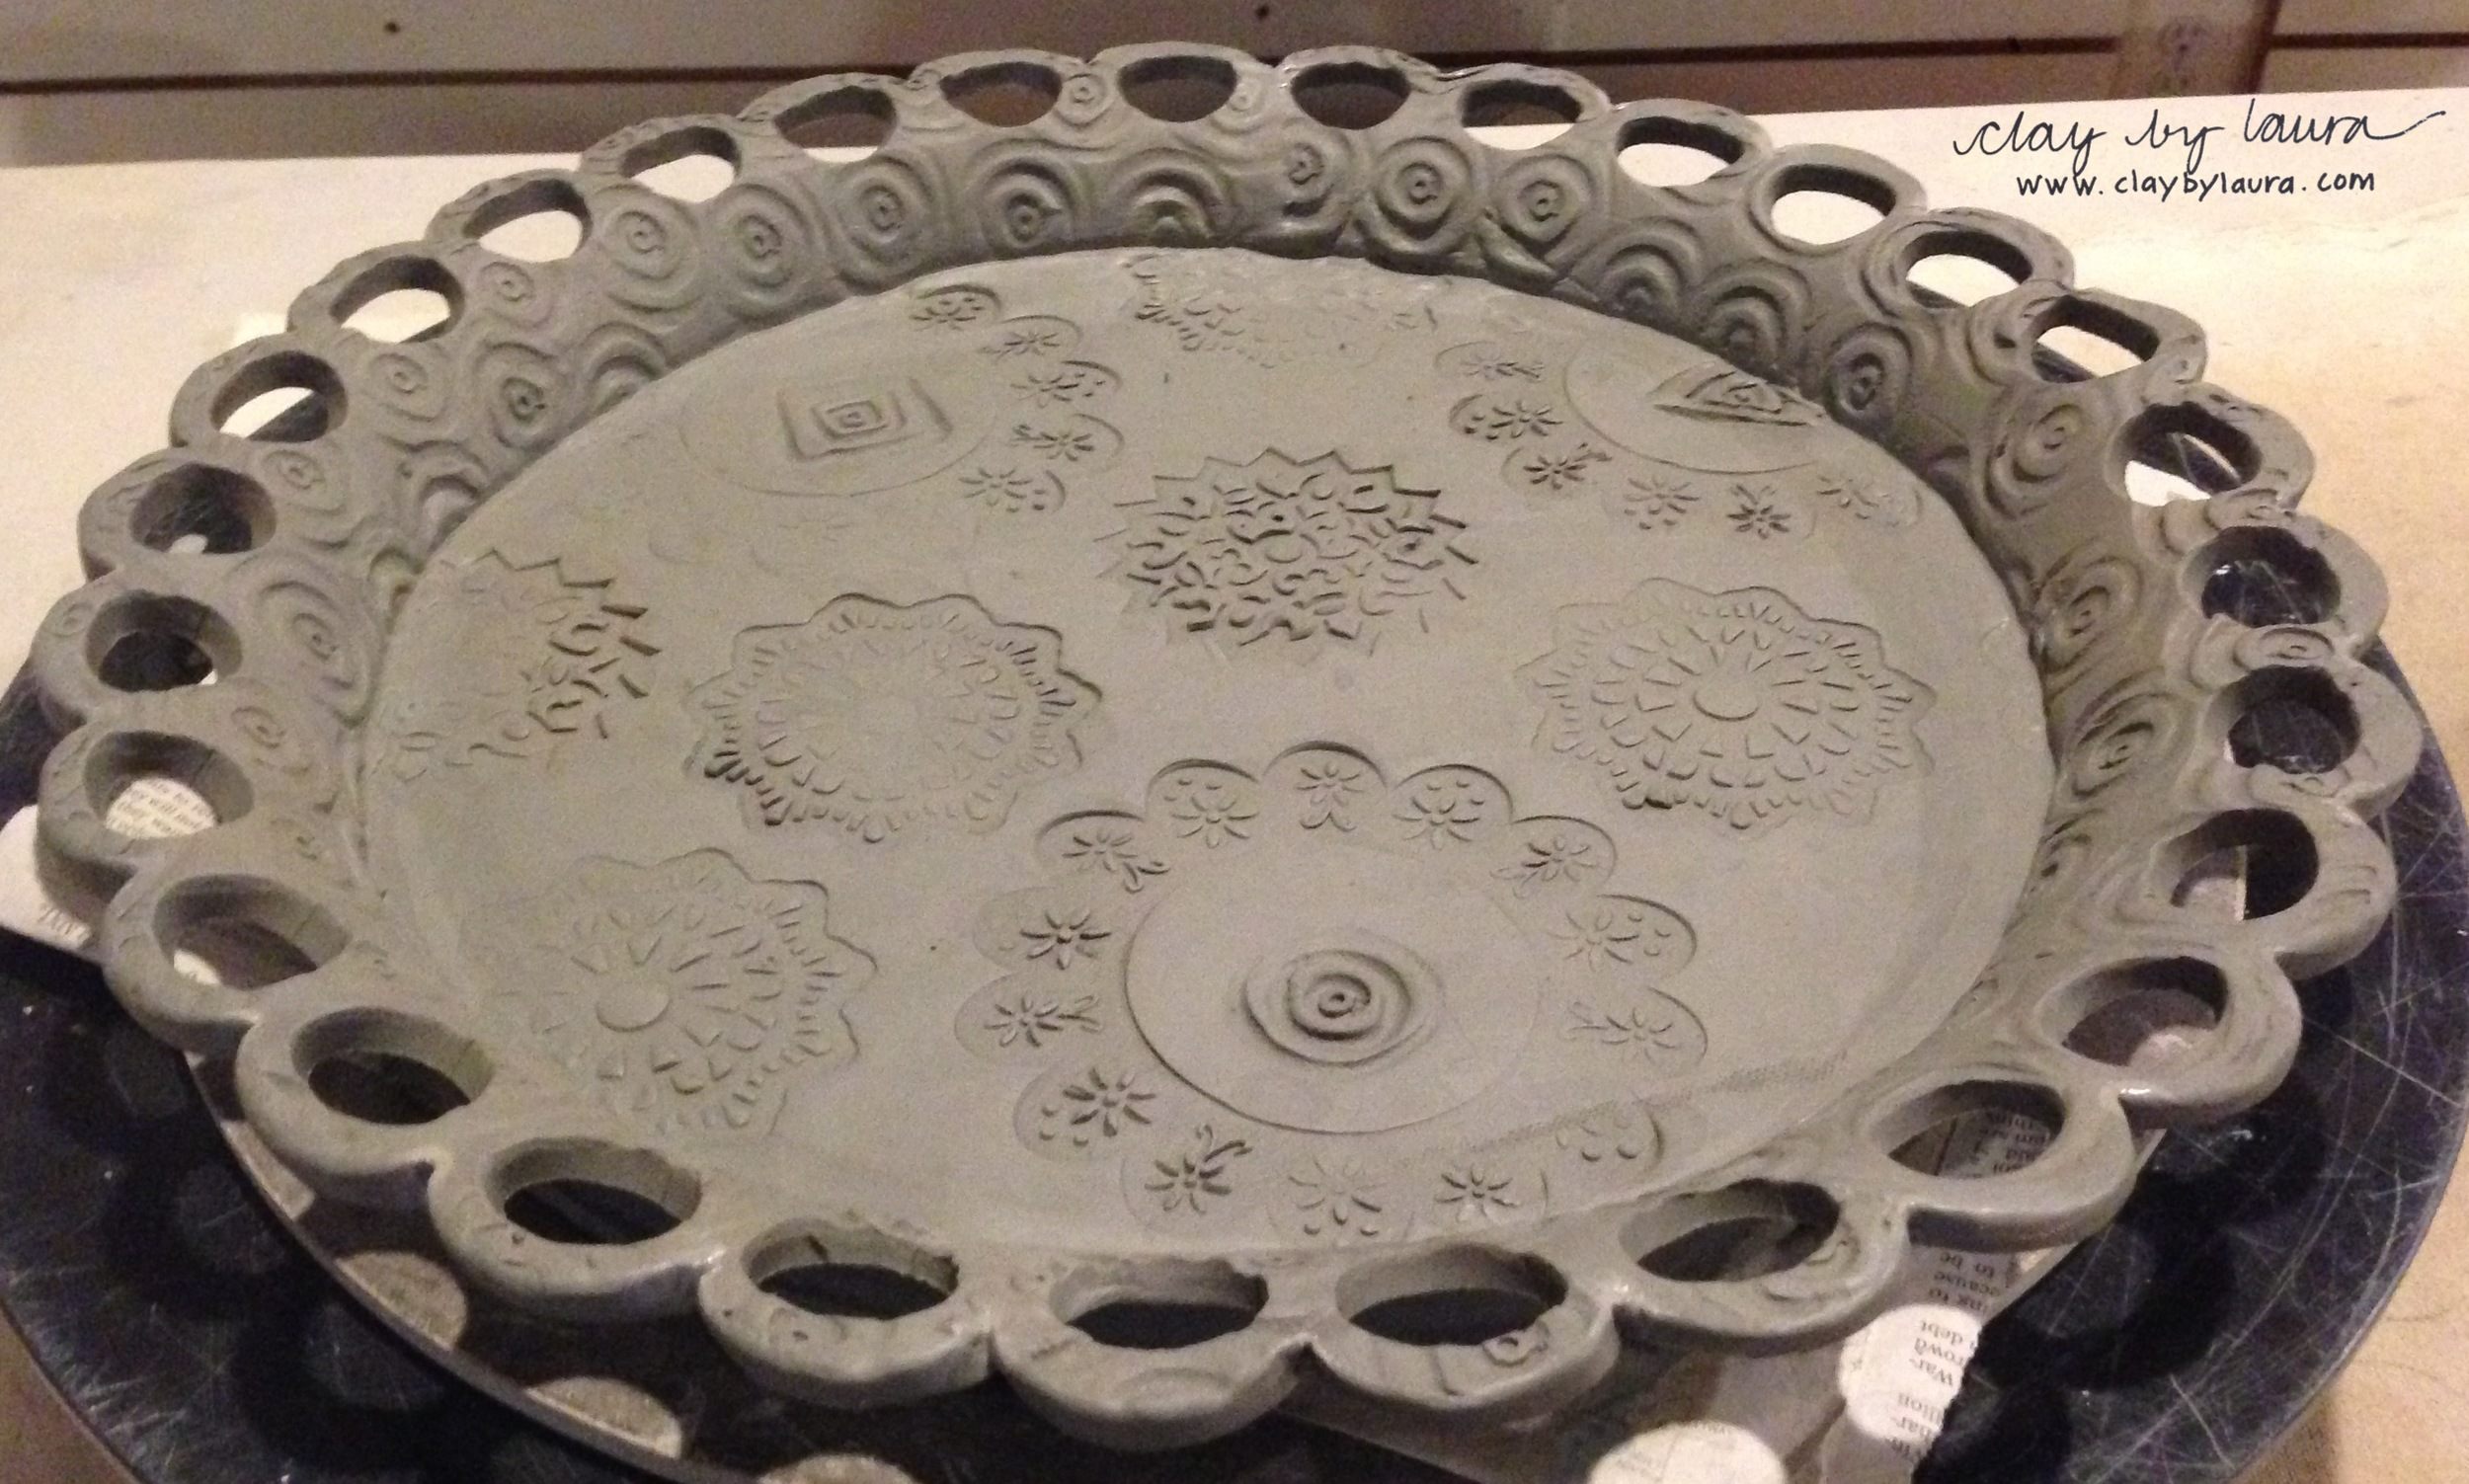 Here is another version of the cake plate idea. The holes can be used for stringing colorful ribbon.